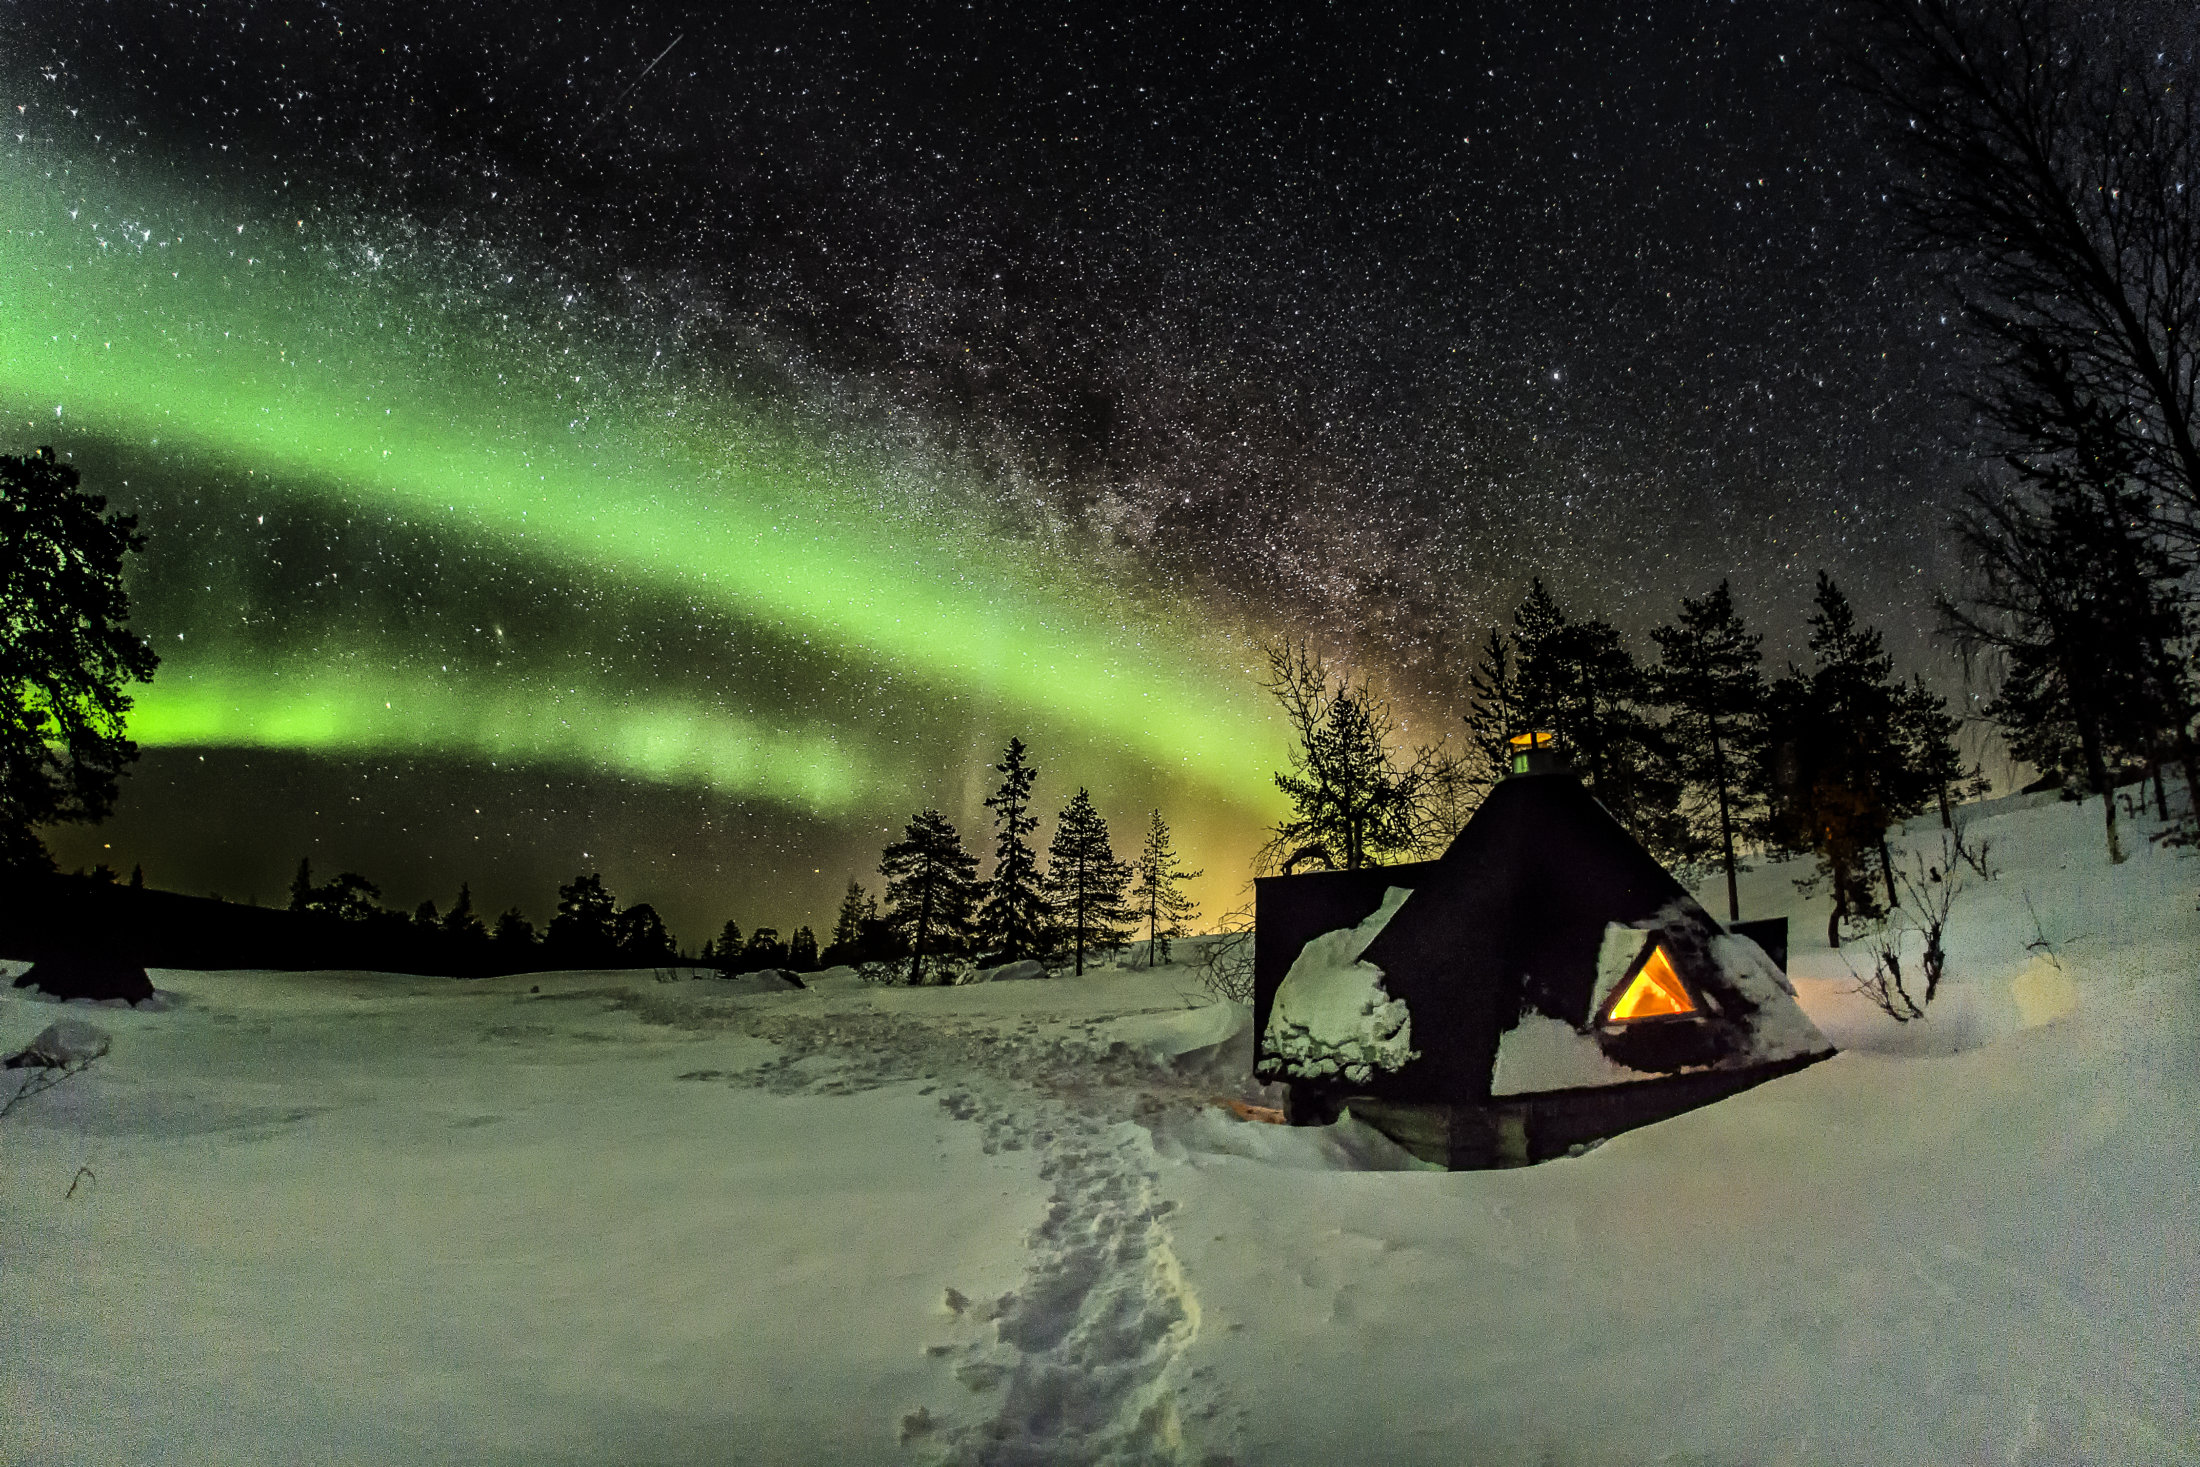 dark sky with bright stars and green northern lights and a wooden tepee